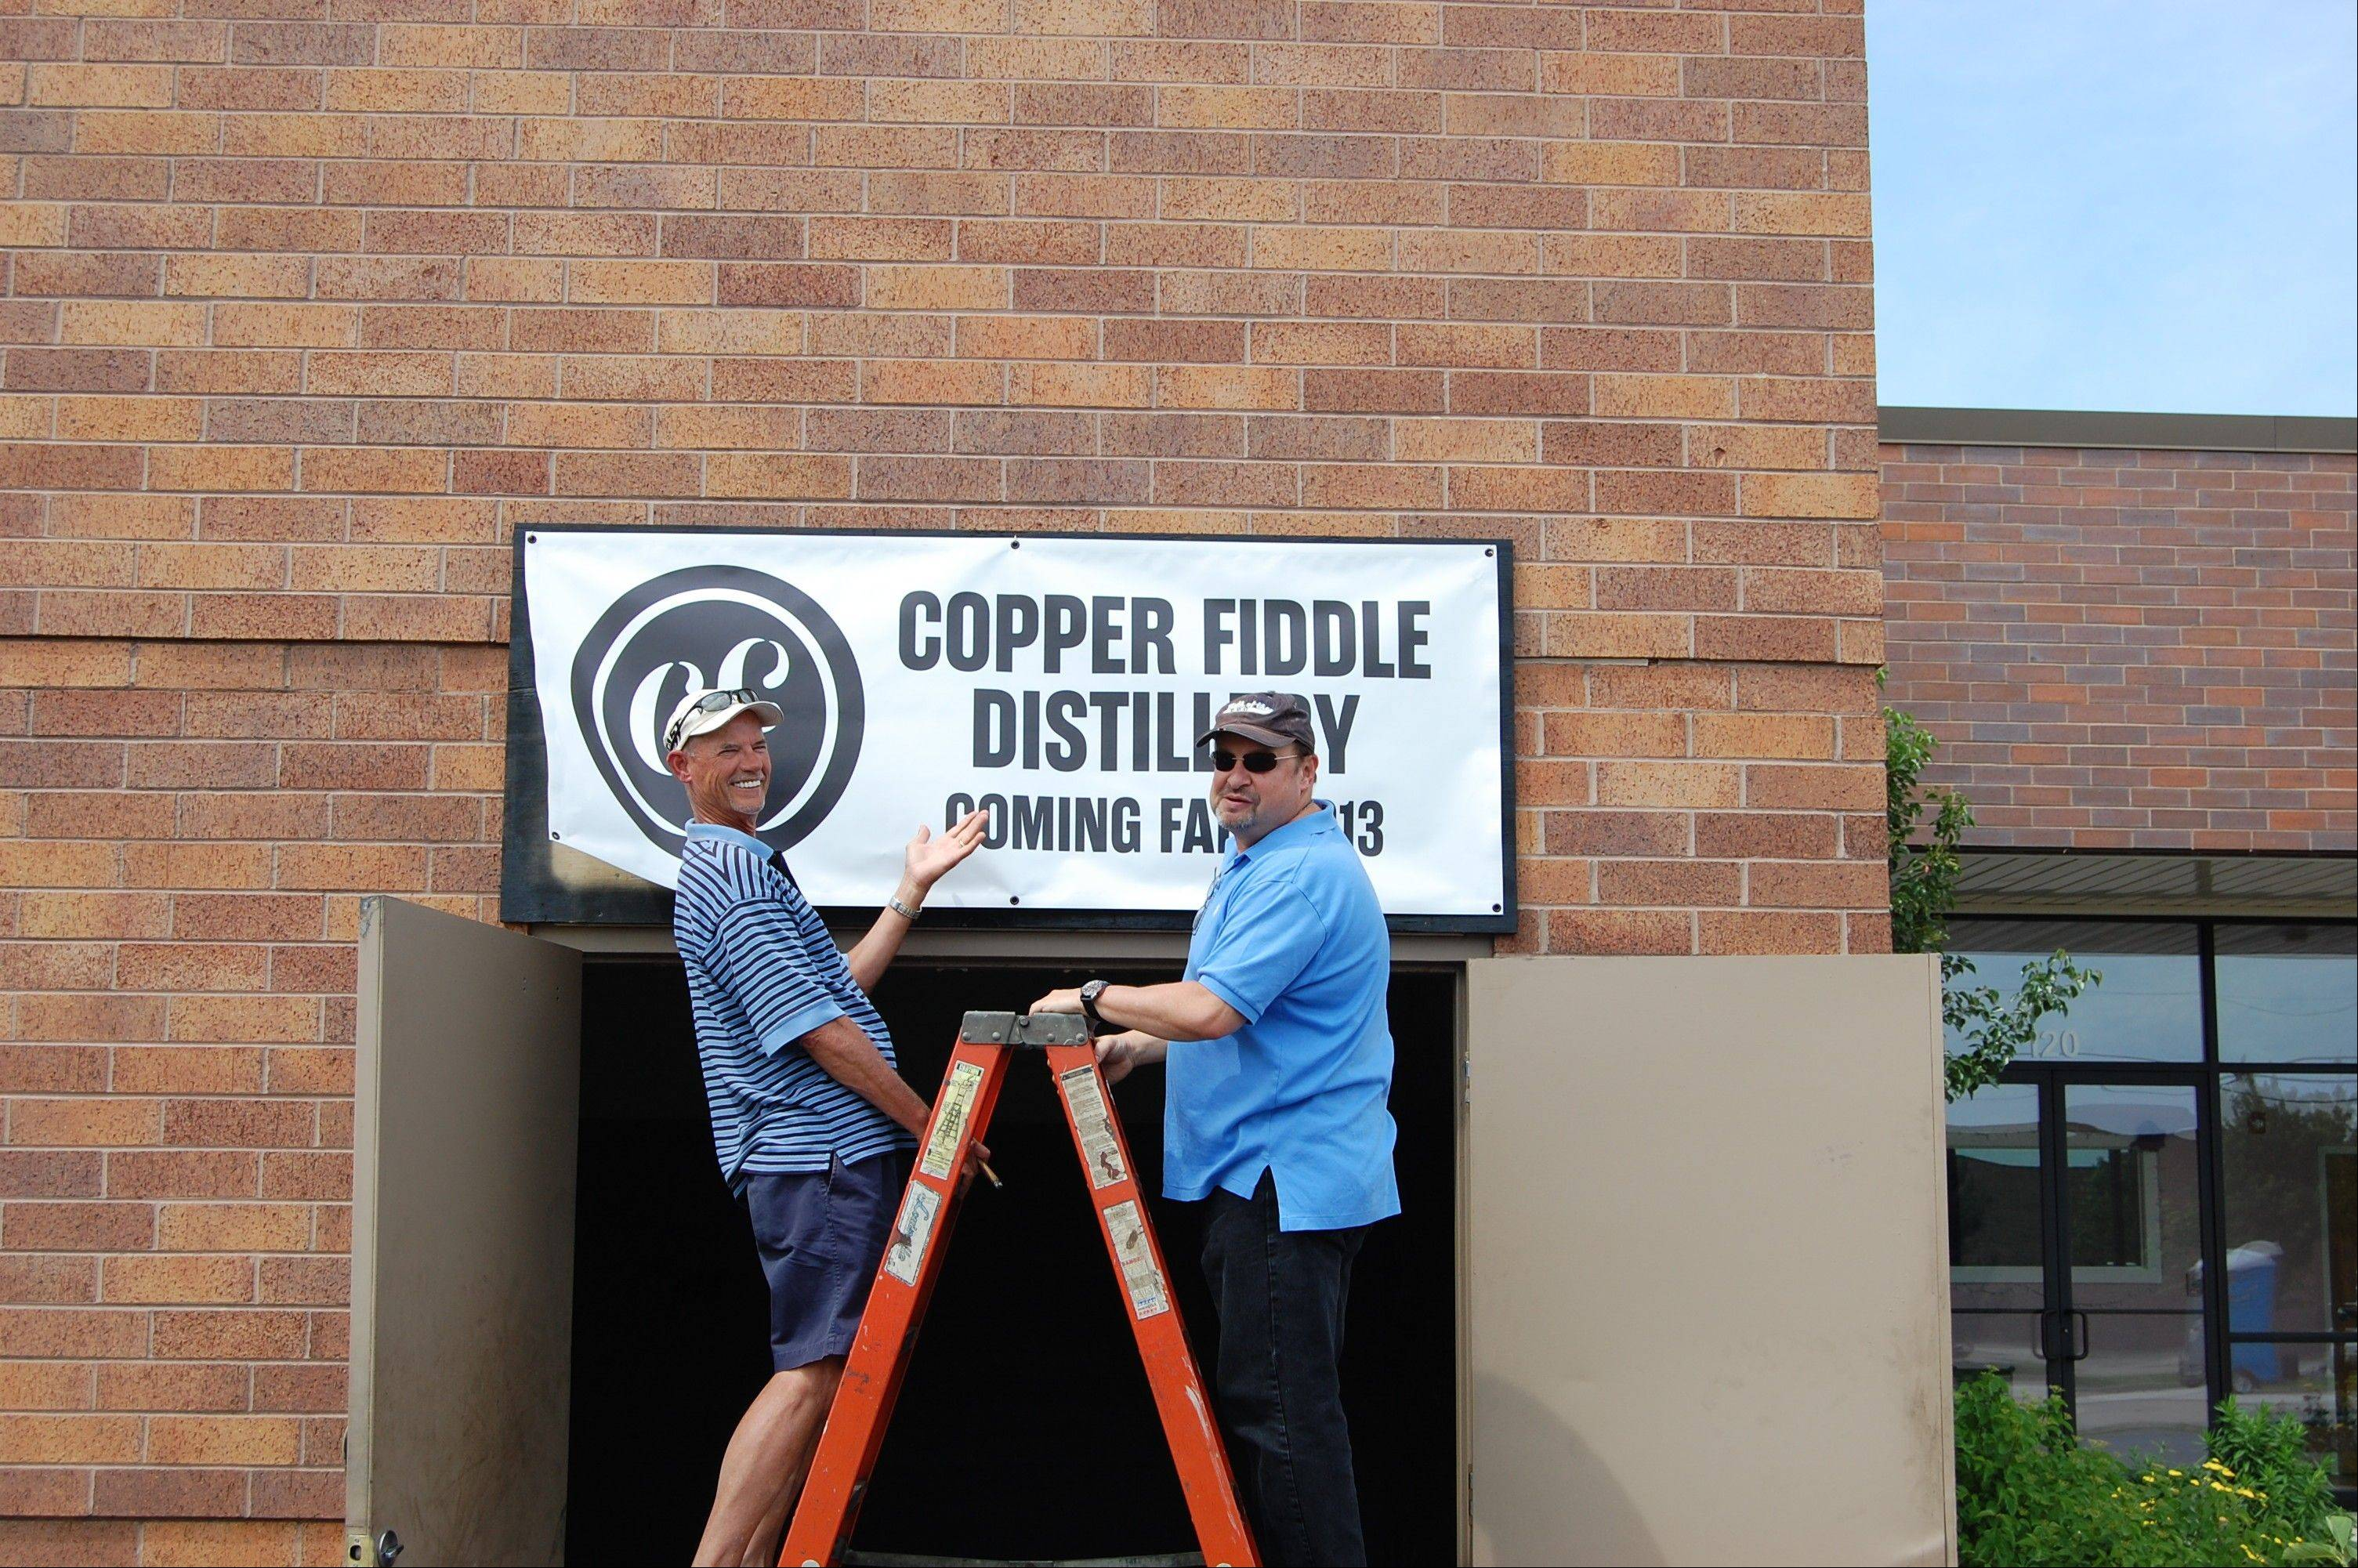 Fred Robinson, left, and Jose Hernandez at the building where they plan to open Copper Fiddle Distillery in Lake Zurich.